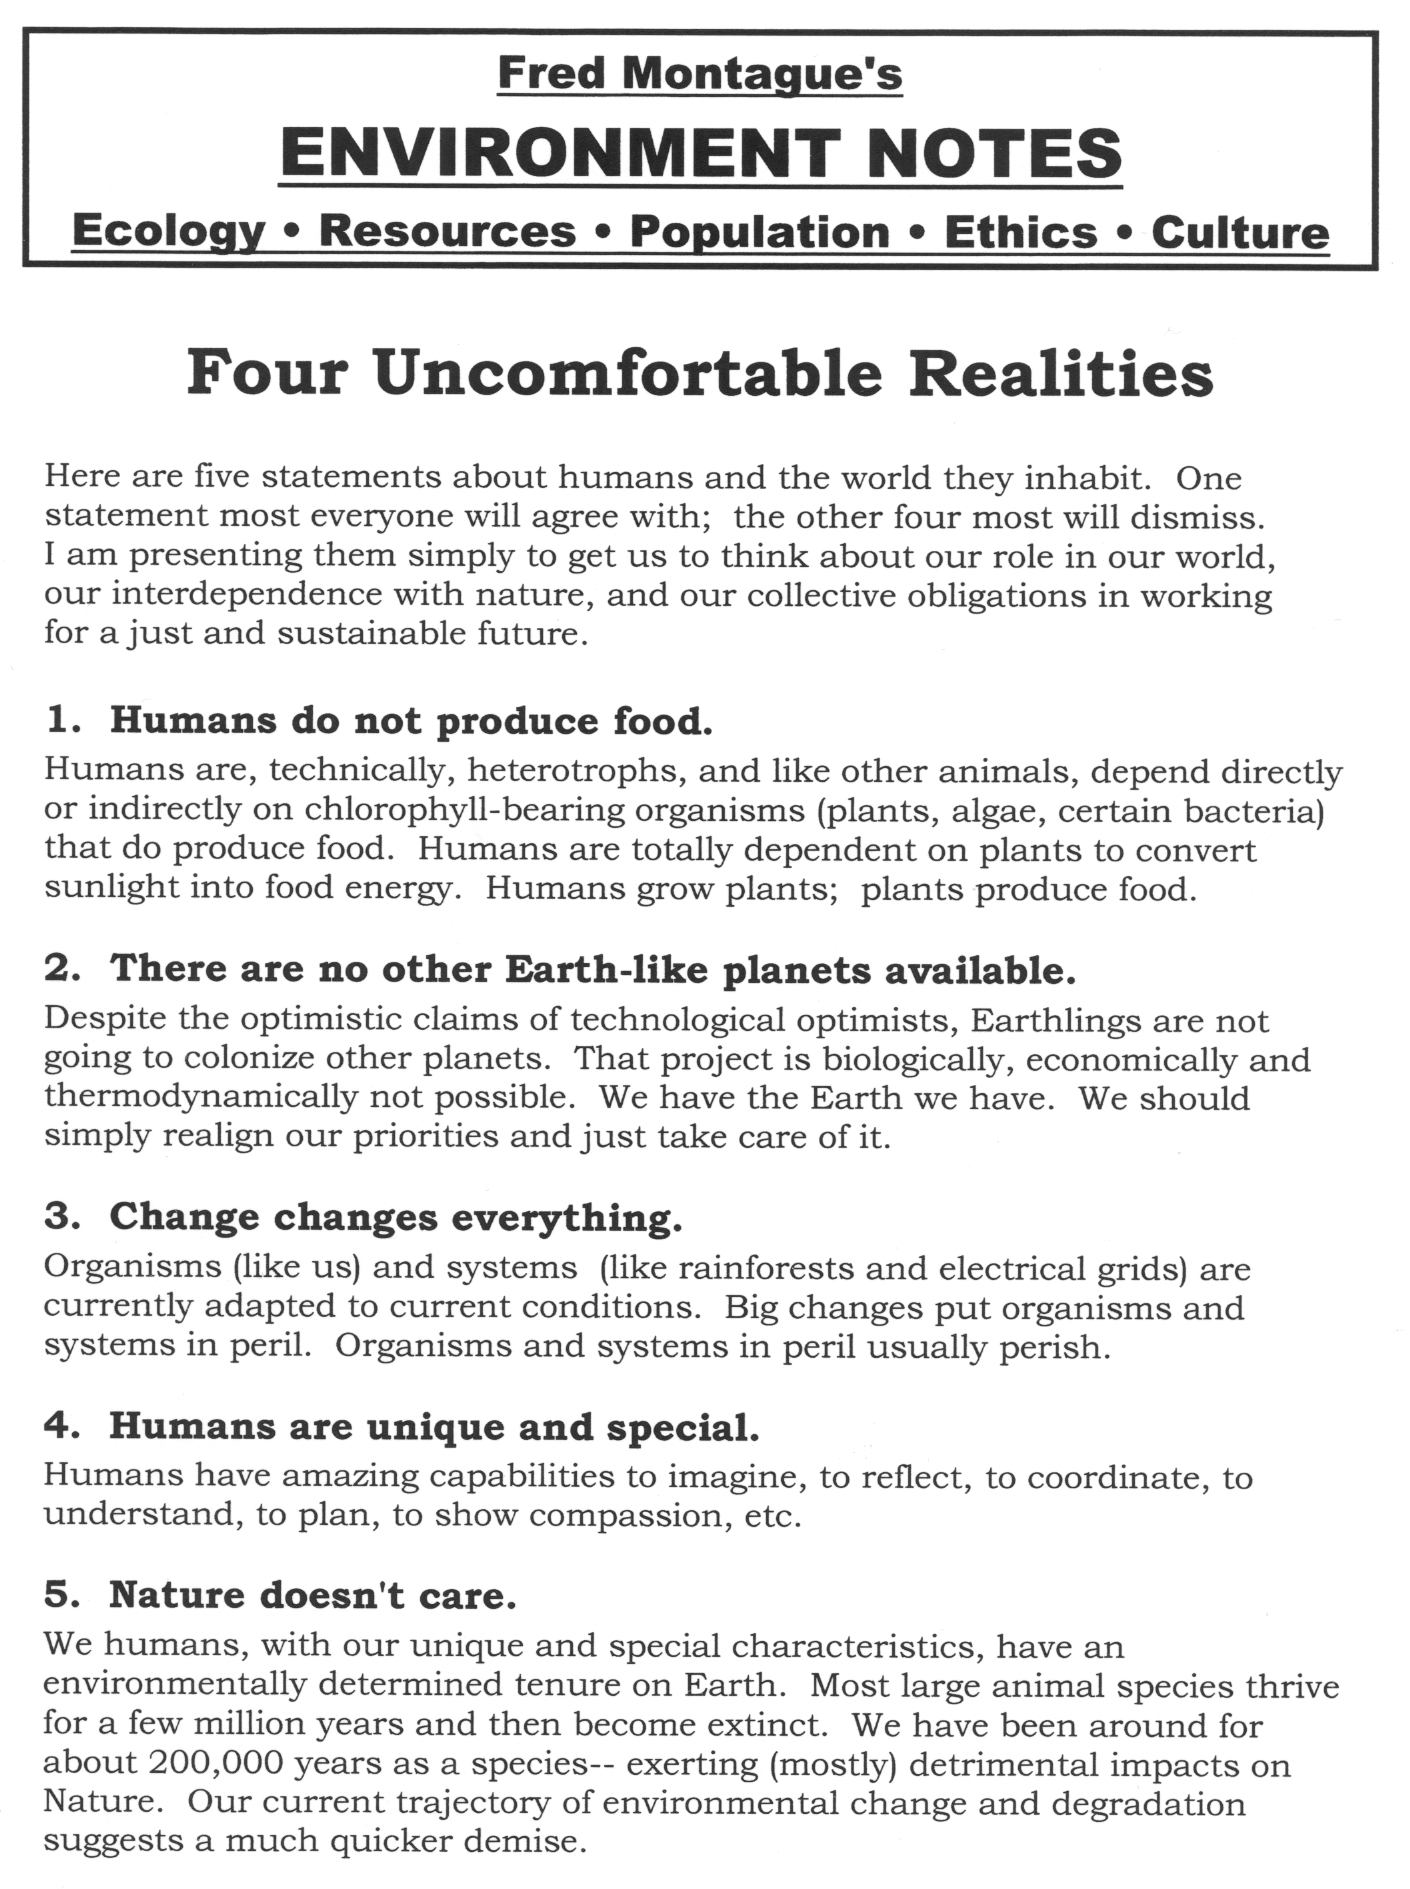 four_uncomfortable_realities